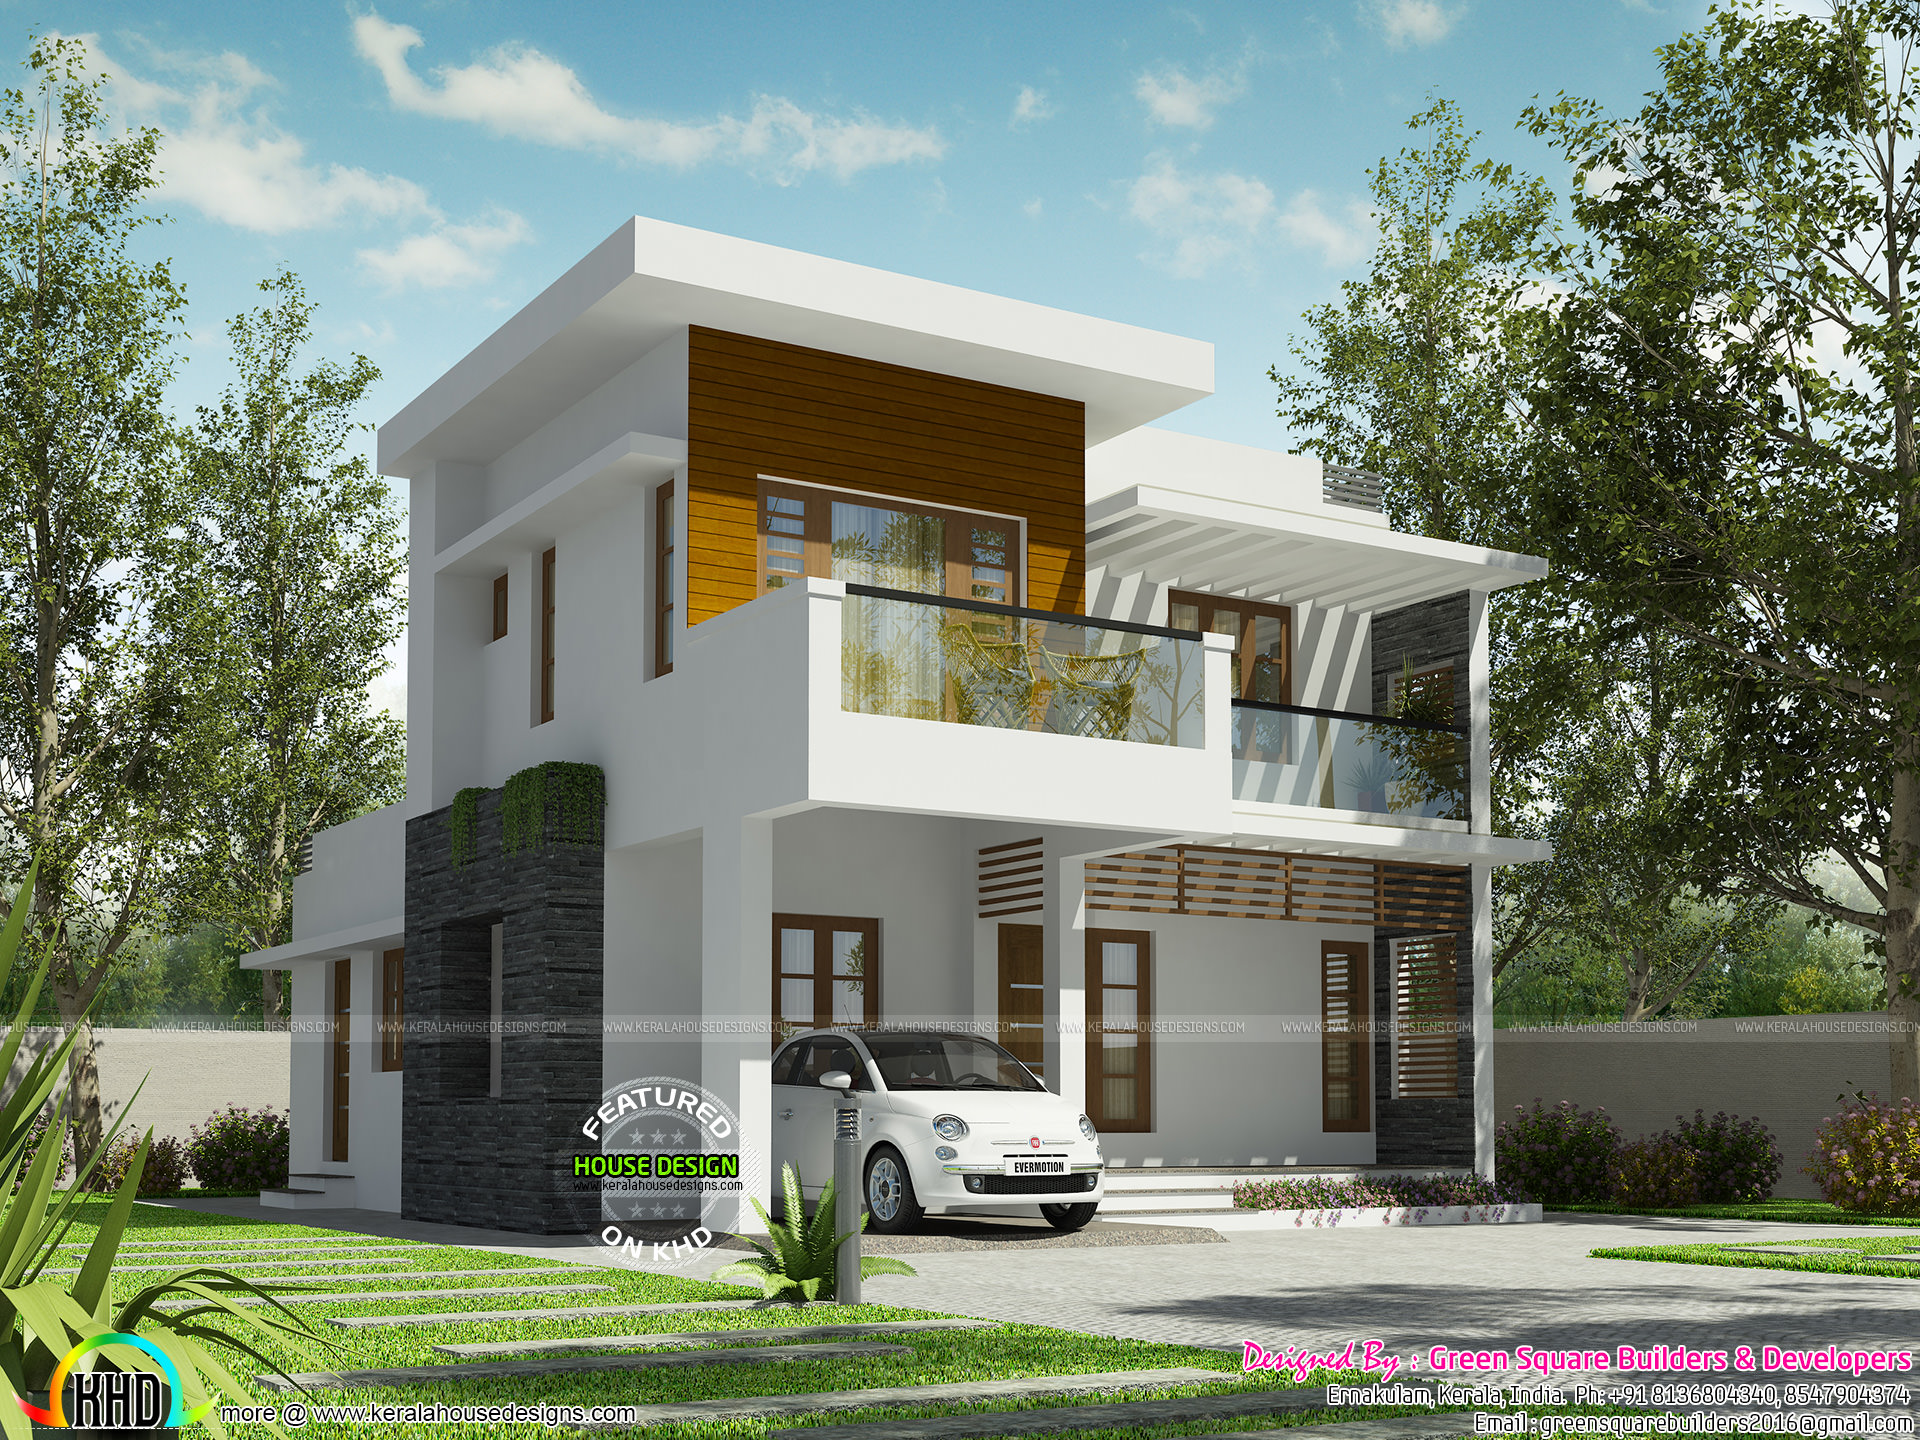 32 lakh cost estimated modern house Kerala home design